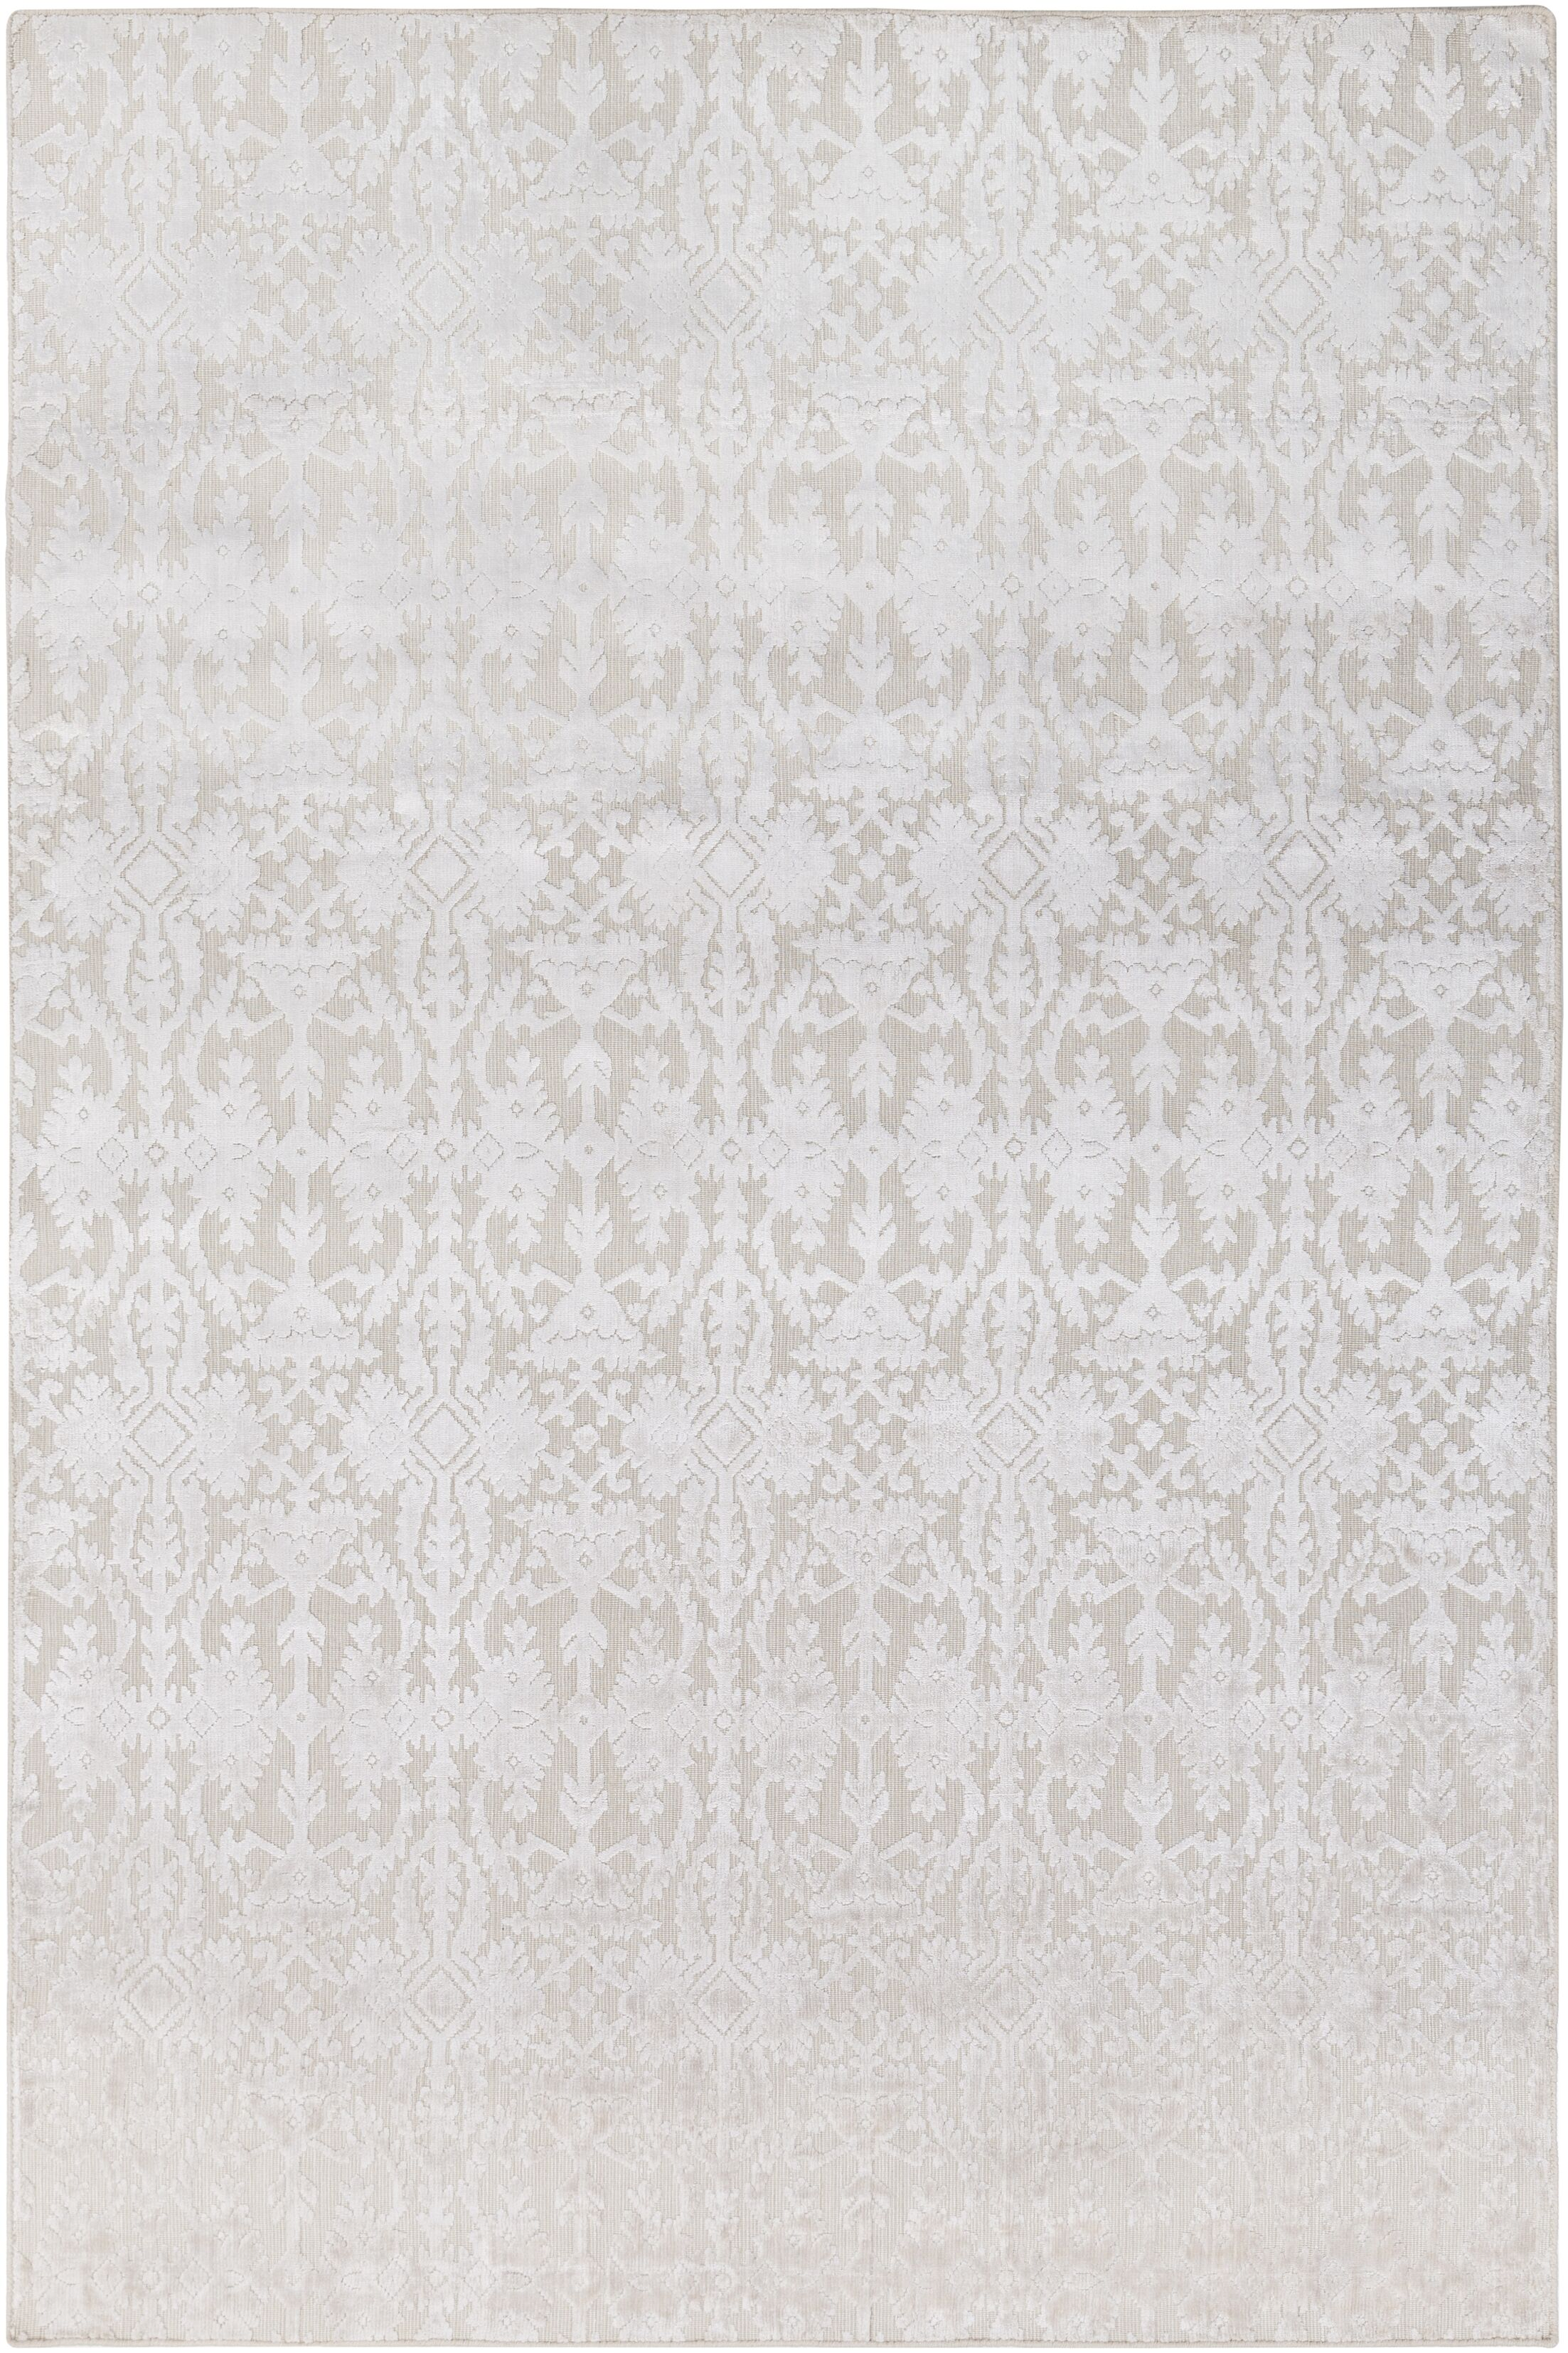 Rockland Hand-Knotted Khaki/White Area Rug Rug Size: Rectangle 6' x 9'